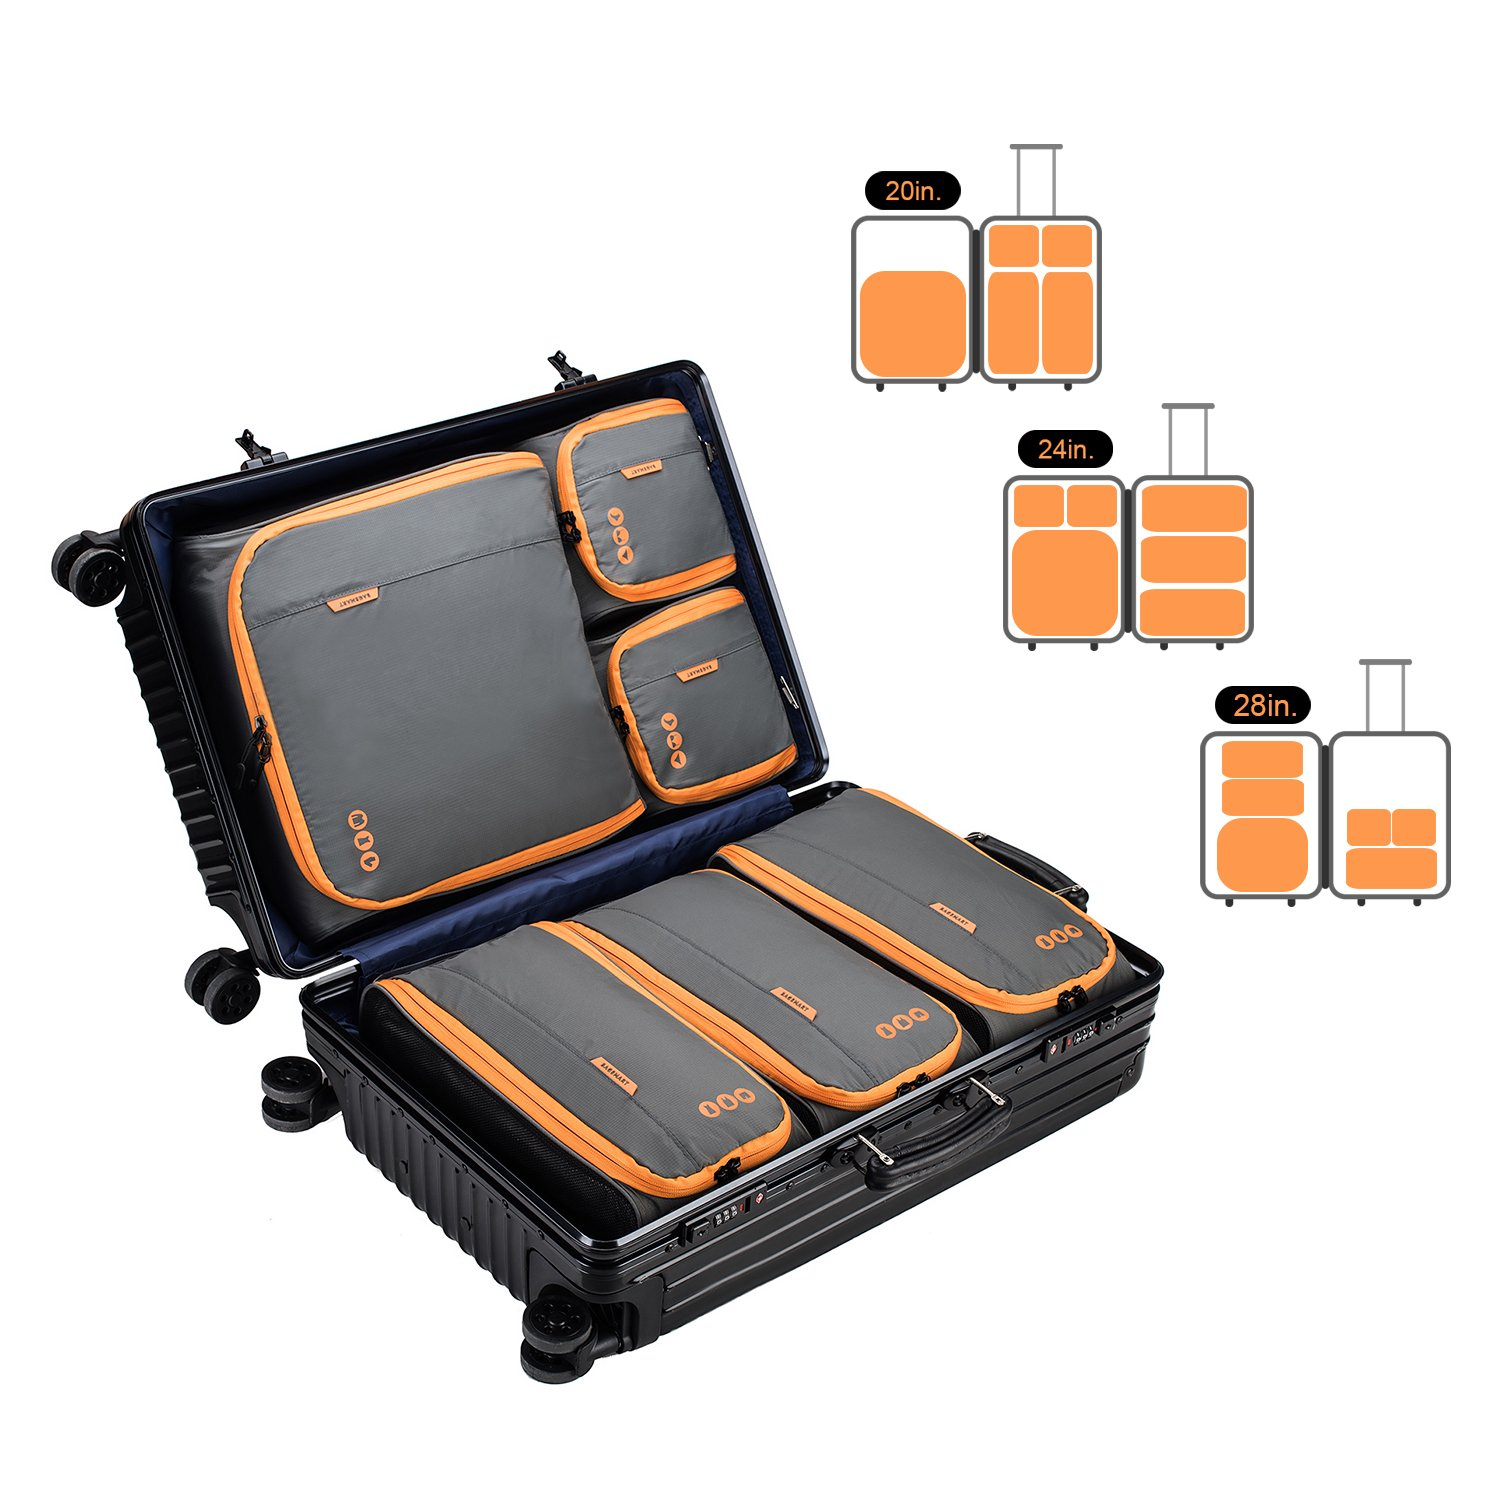 BAGSMART 6 Sets Packing Cubes 3 Sizes Portable Travel Luggage Organizer for Carry-on Accessories by BAGSMART (Image #2)